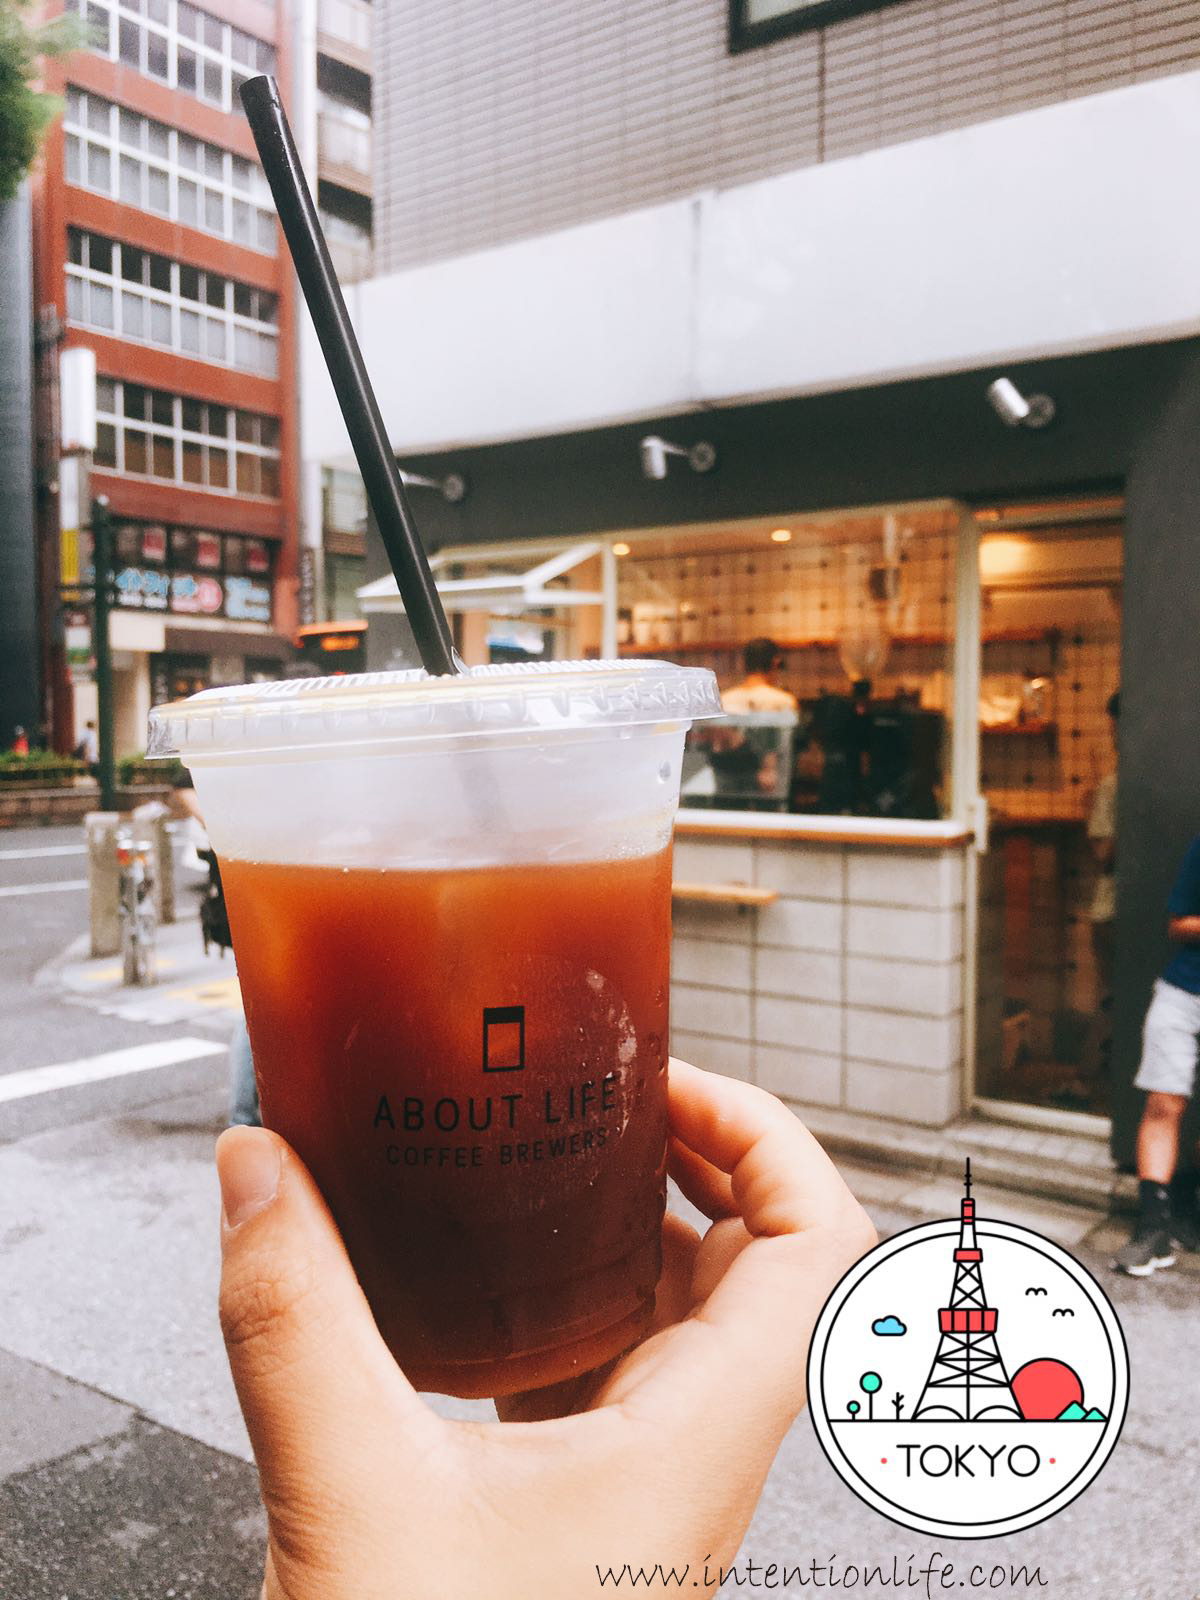 【東京·澀谷】About Life Coffee Brewers 咖啡店